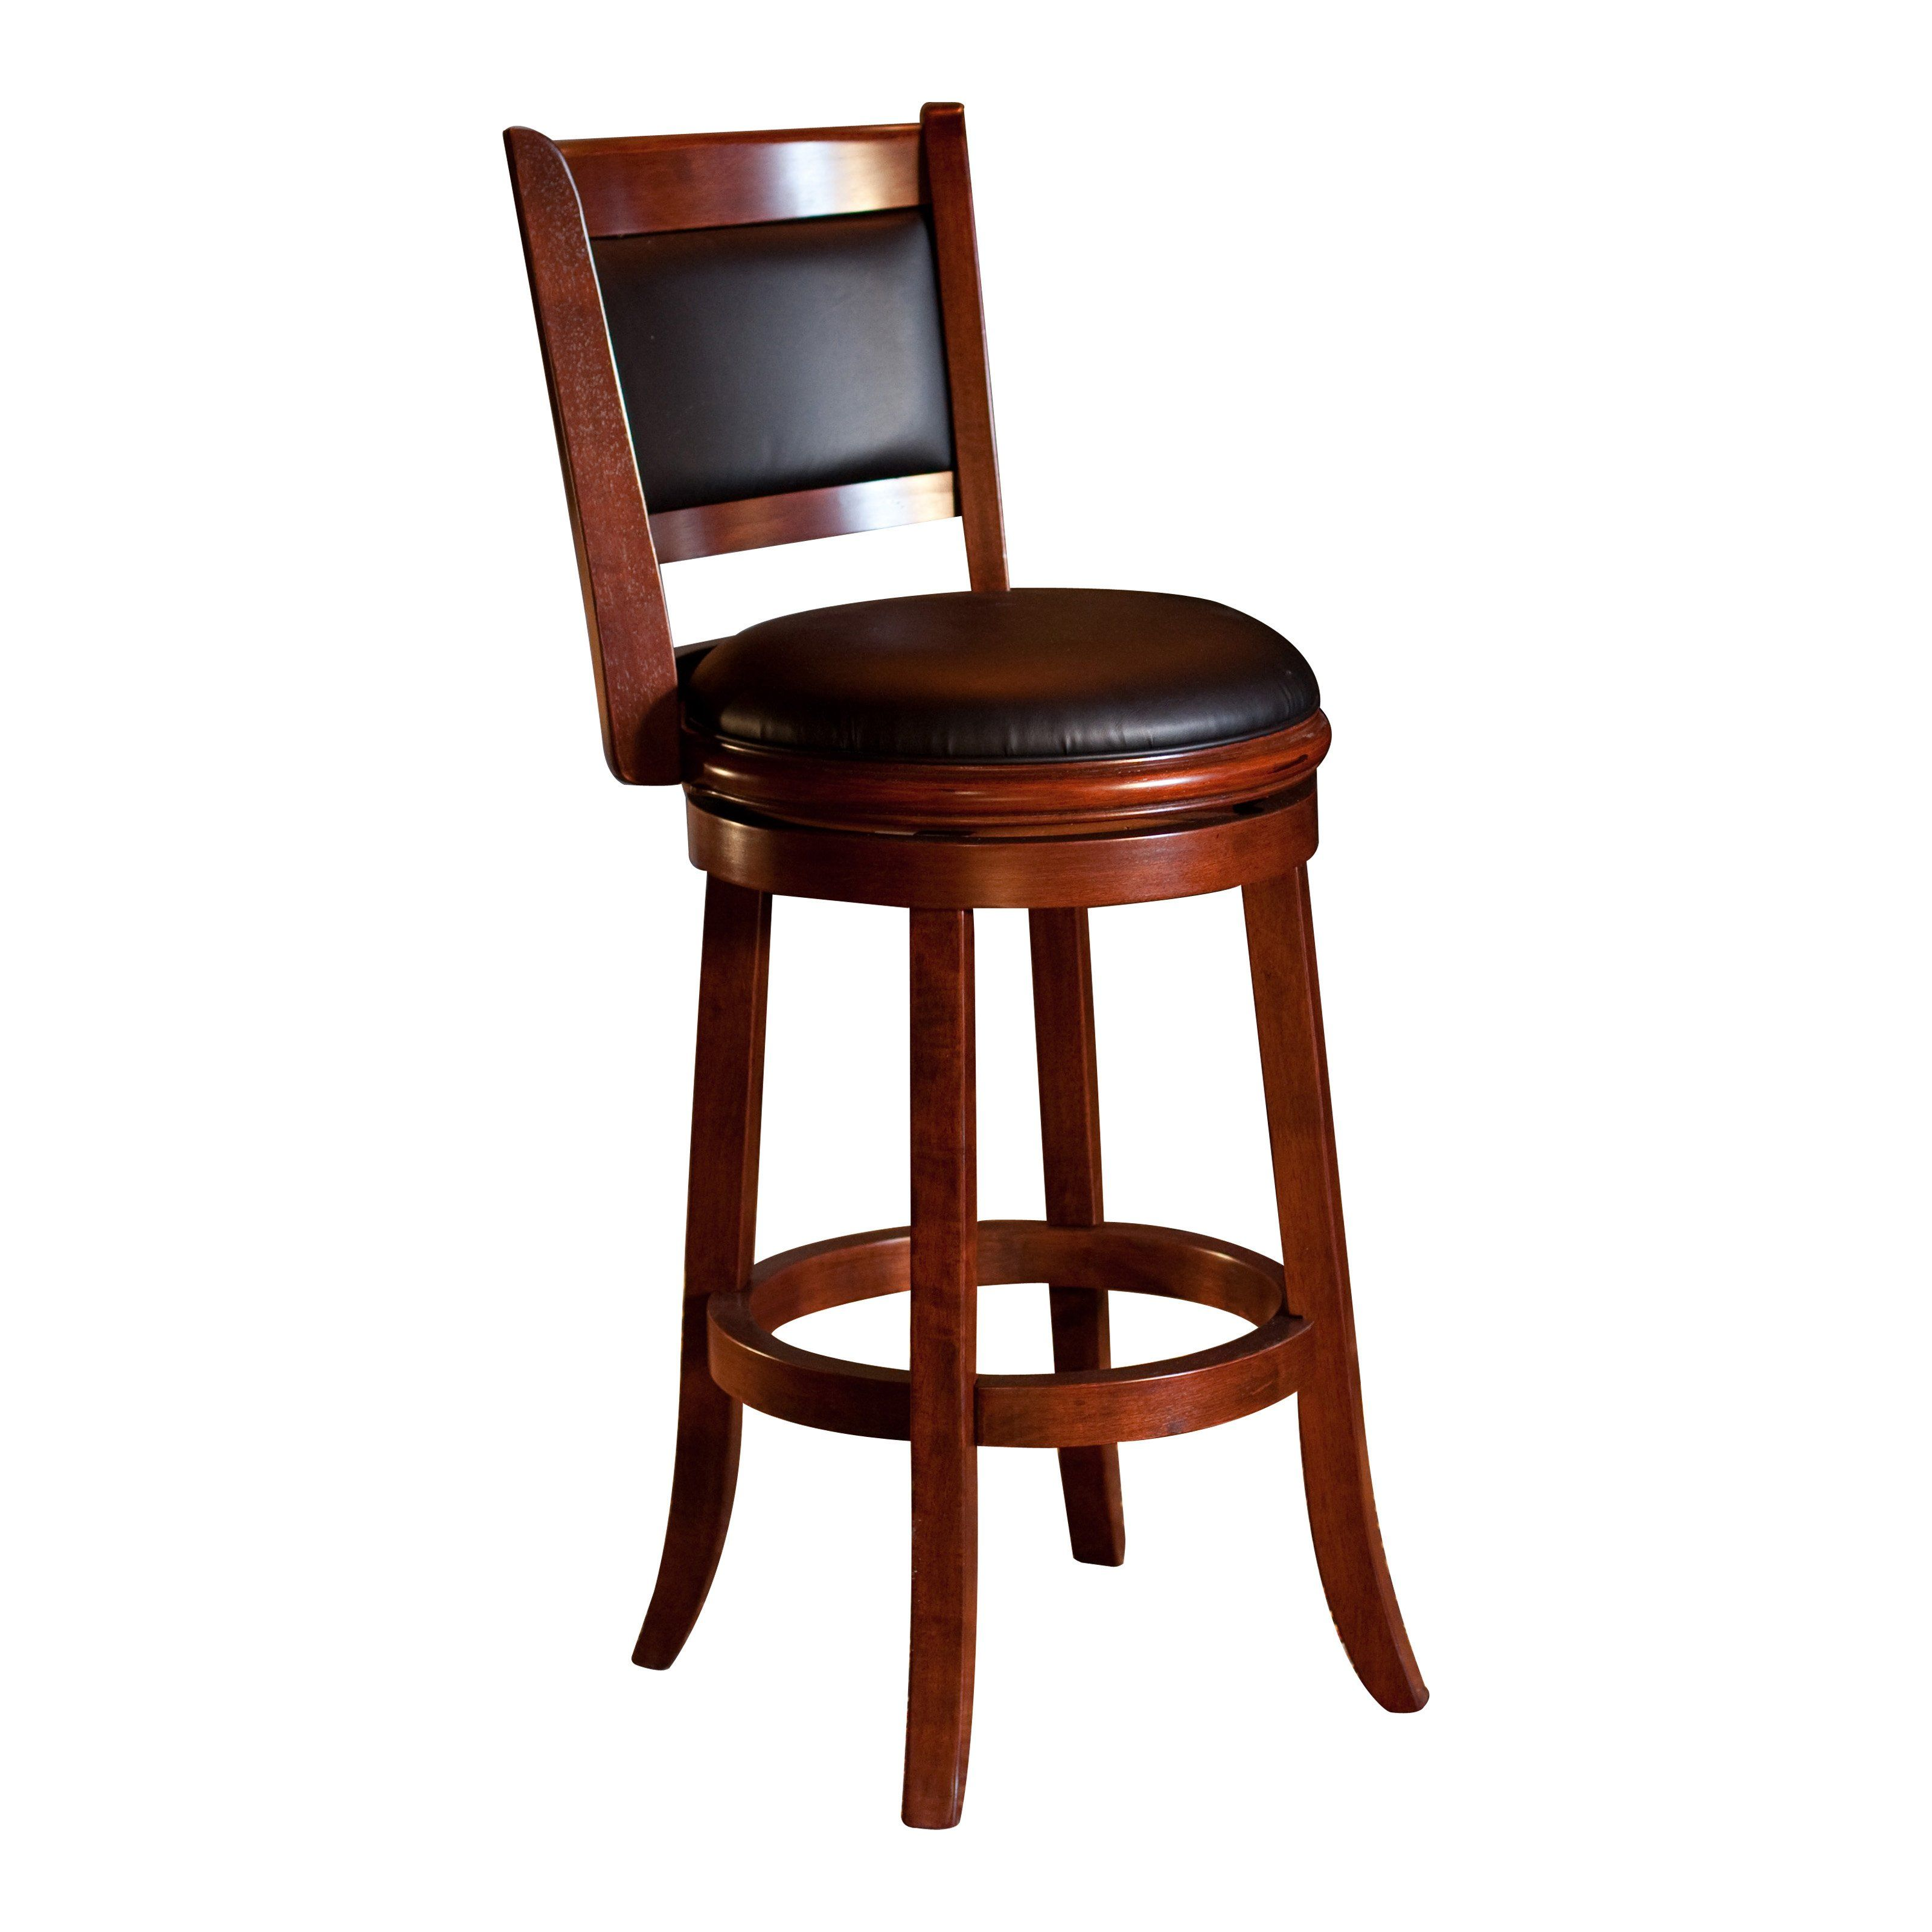 racer and counter full bar stool size articles davidson stools harley table height grey tag with